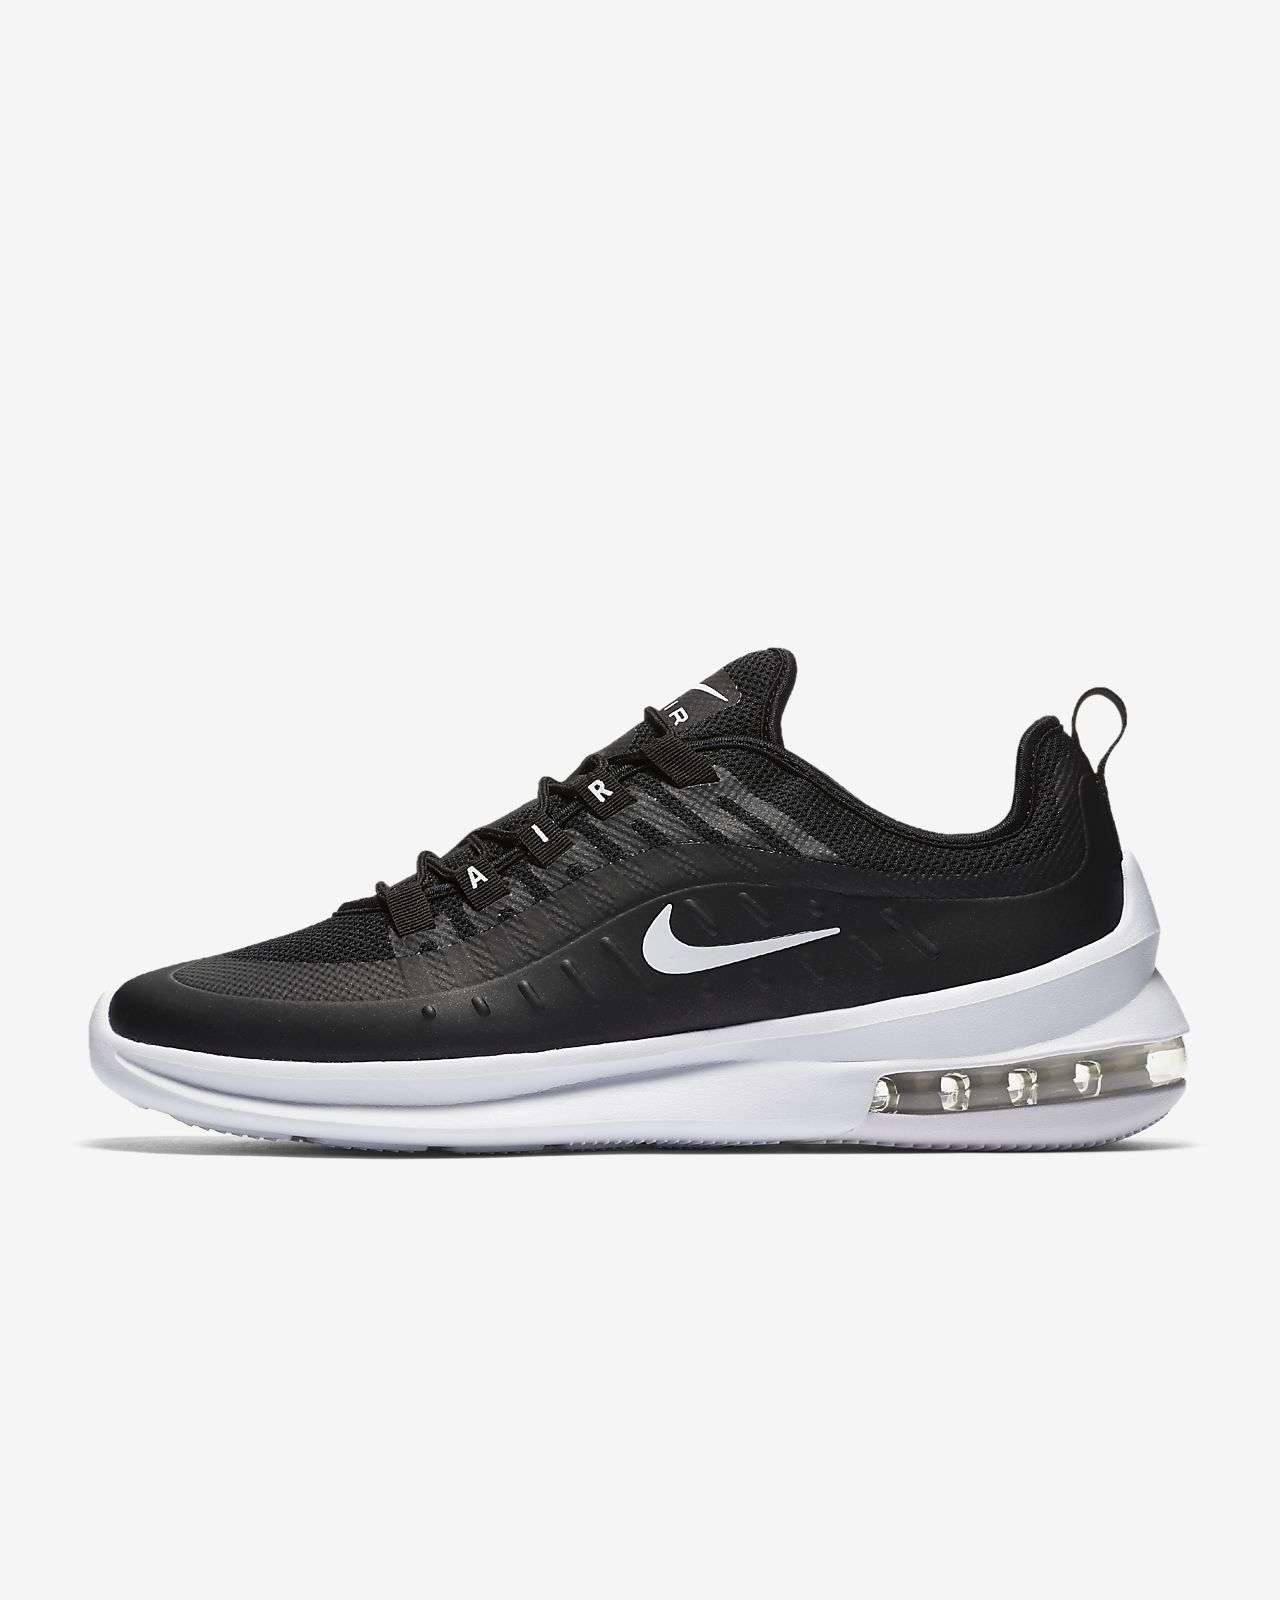 6f26dc3a2 Nike Air Max Axis Men's Shoe. Nike.com